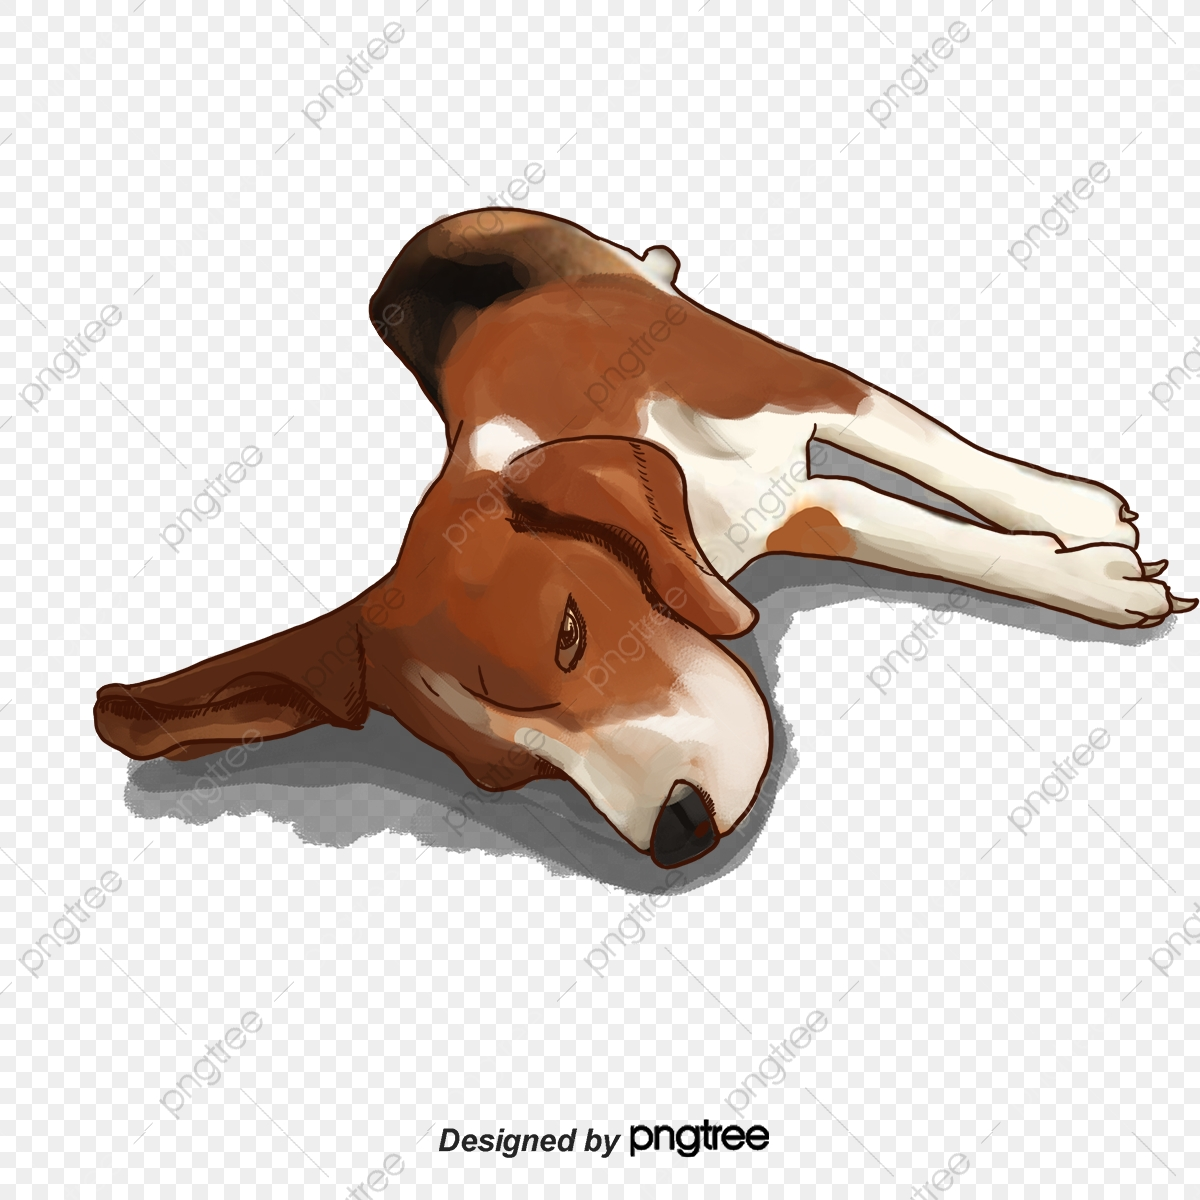 A child sleeping on. Clipart dogs body